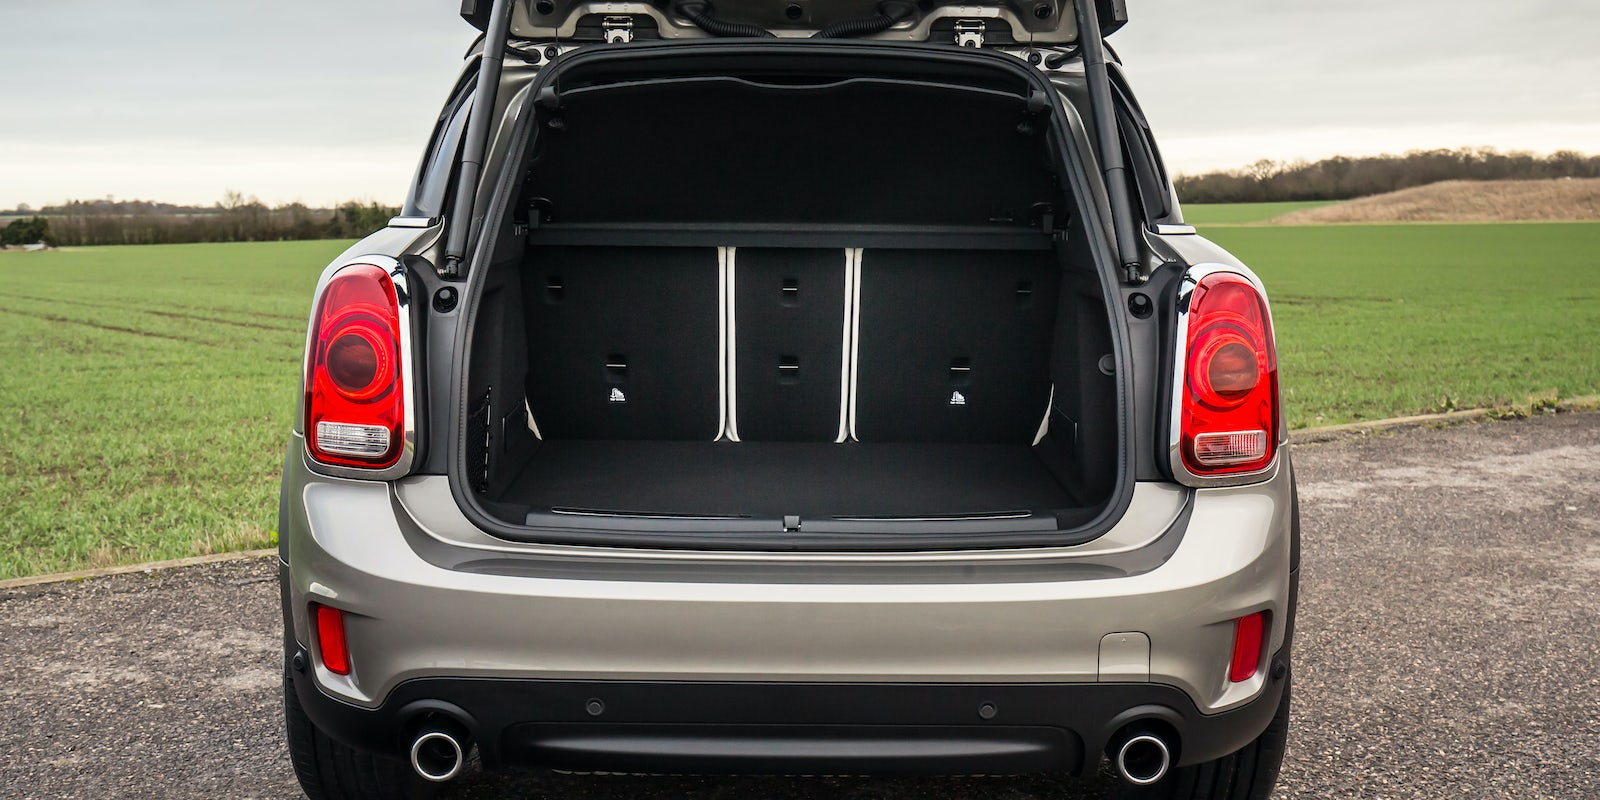 mini countryman boot dimensions in cm car reviews 2018. Black Bedroom Furniture Sets. Home Design Ideas